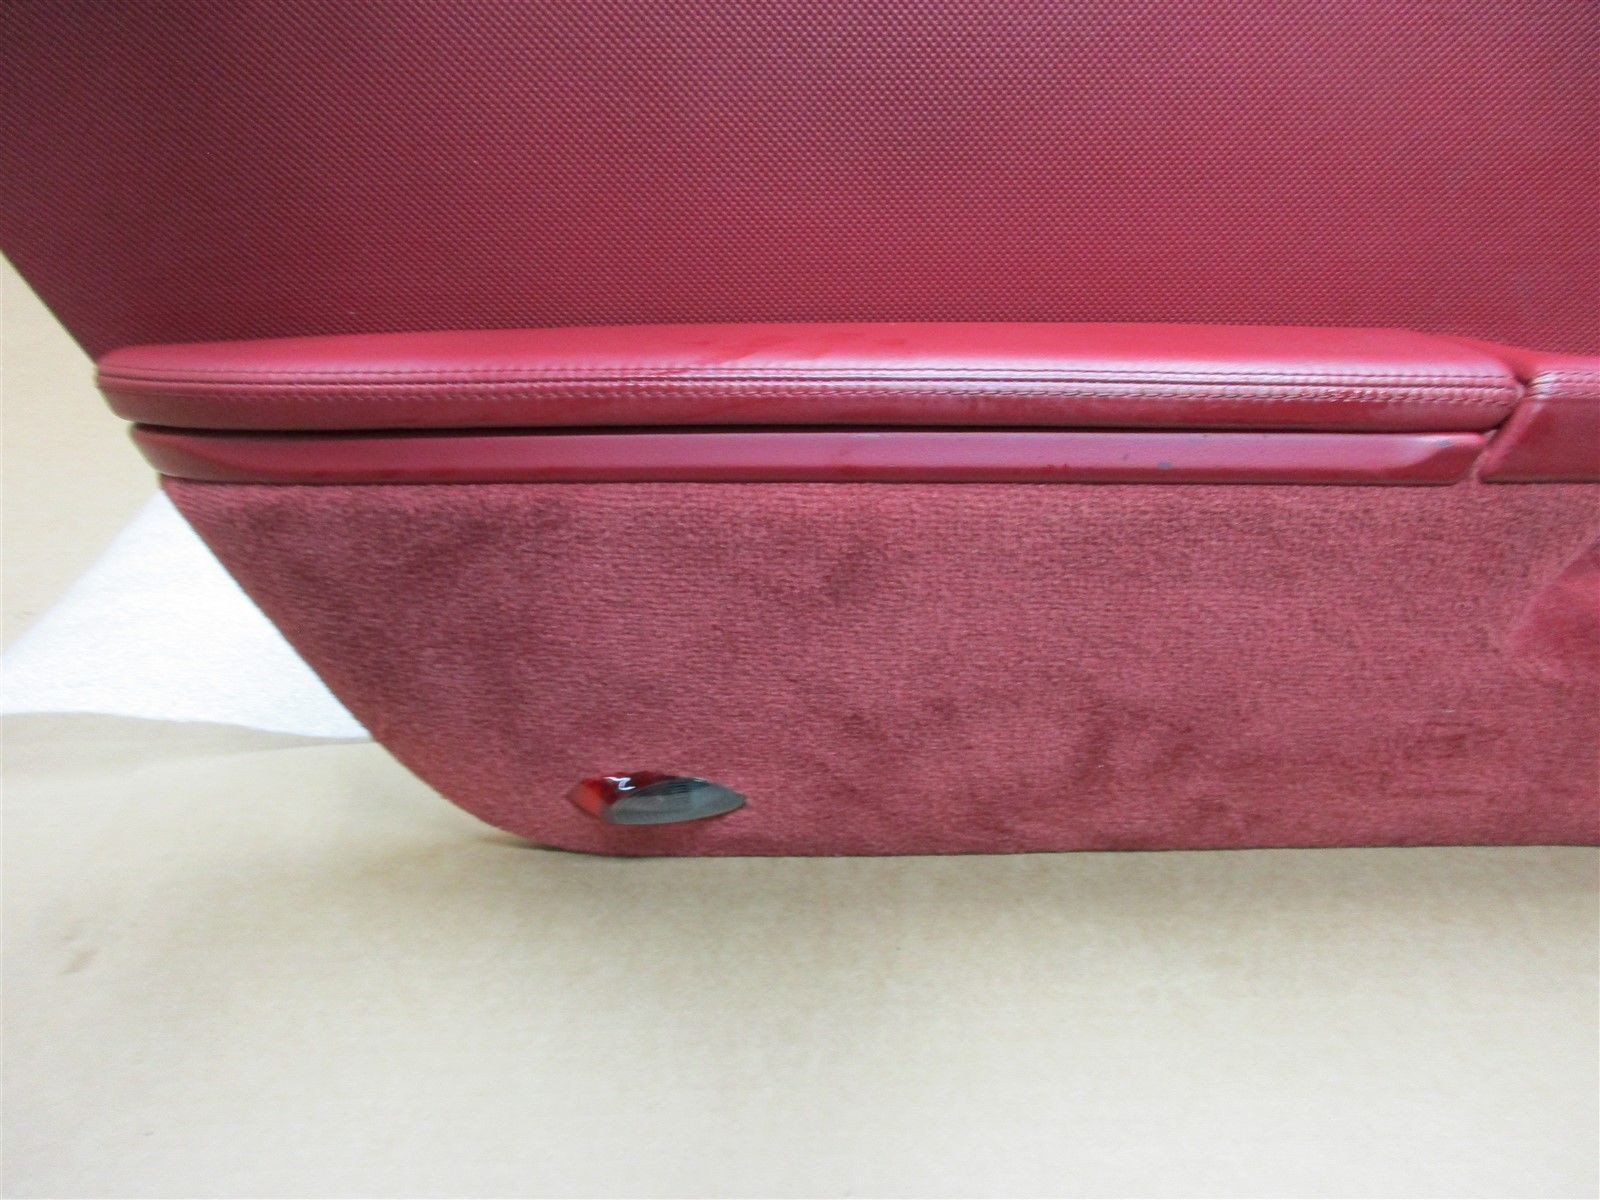 08 Boxster S Limited EDITION Porsche 987 L INTERIOR DOOR PANEL TRIM 49,923